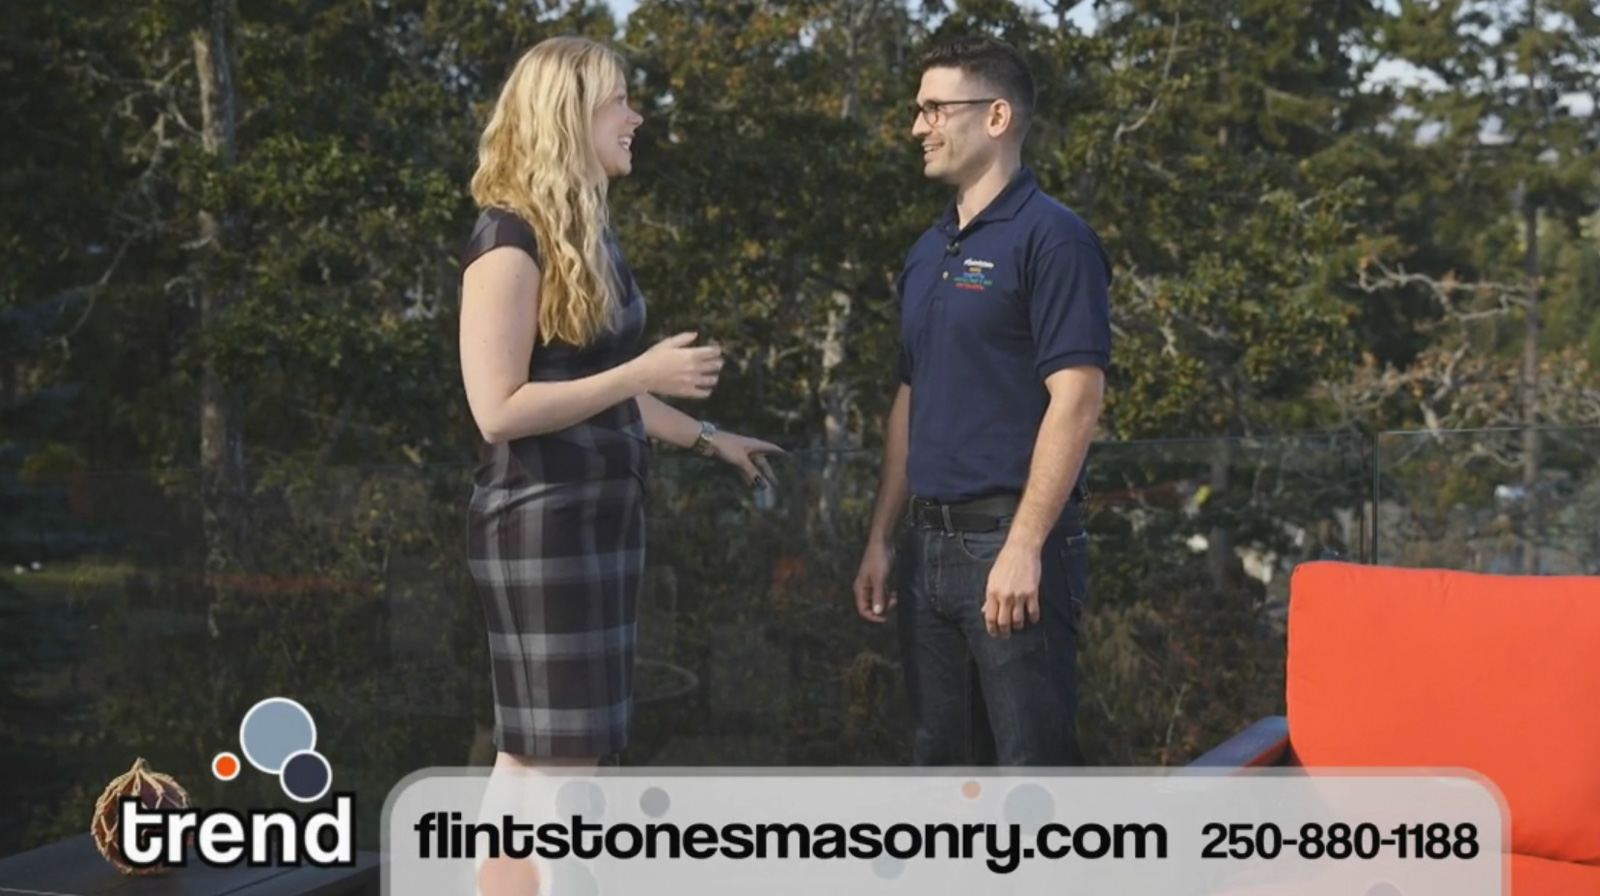 Flintstones Masonry | outdoor living space and kitchen Trend with Amy McGeachy